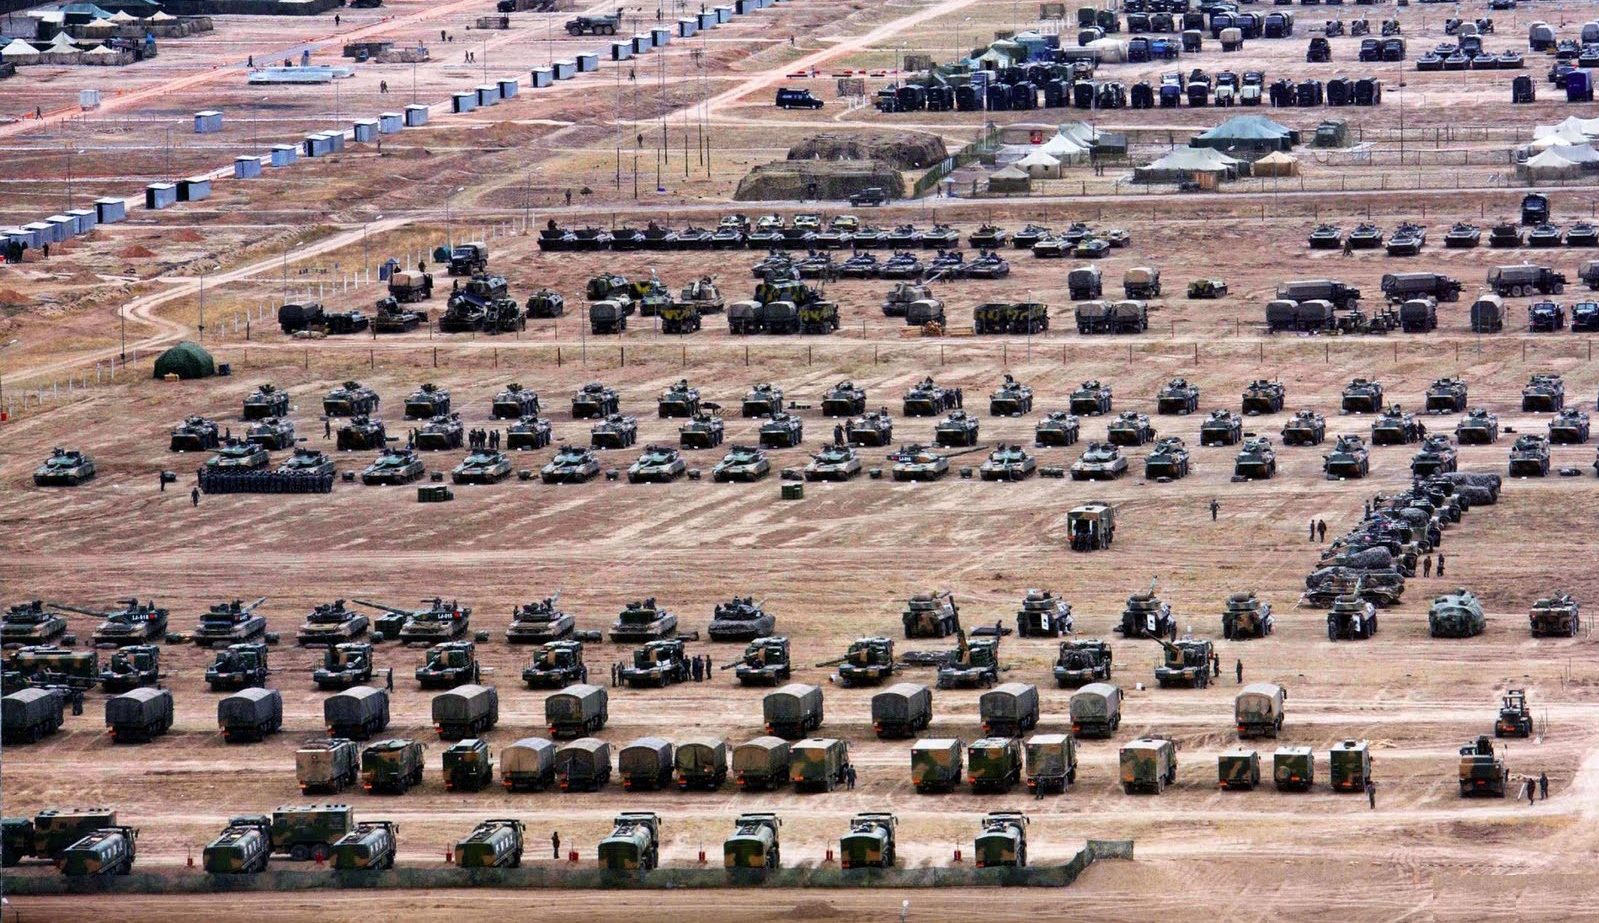 Future Military Weapons Weapon systems deployed by the